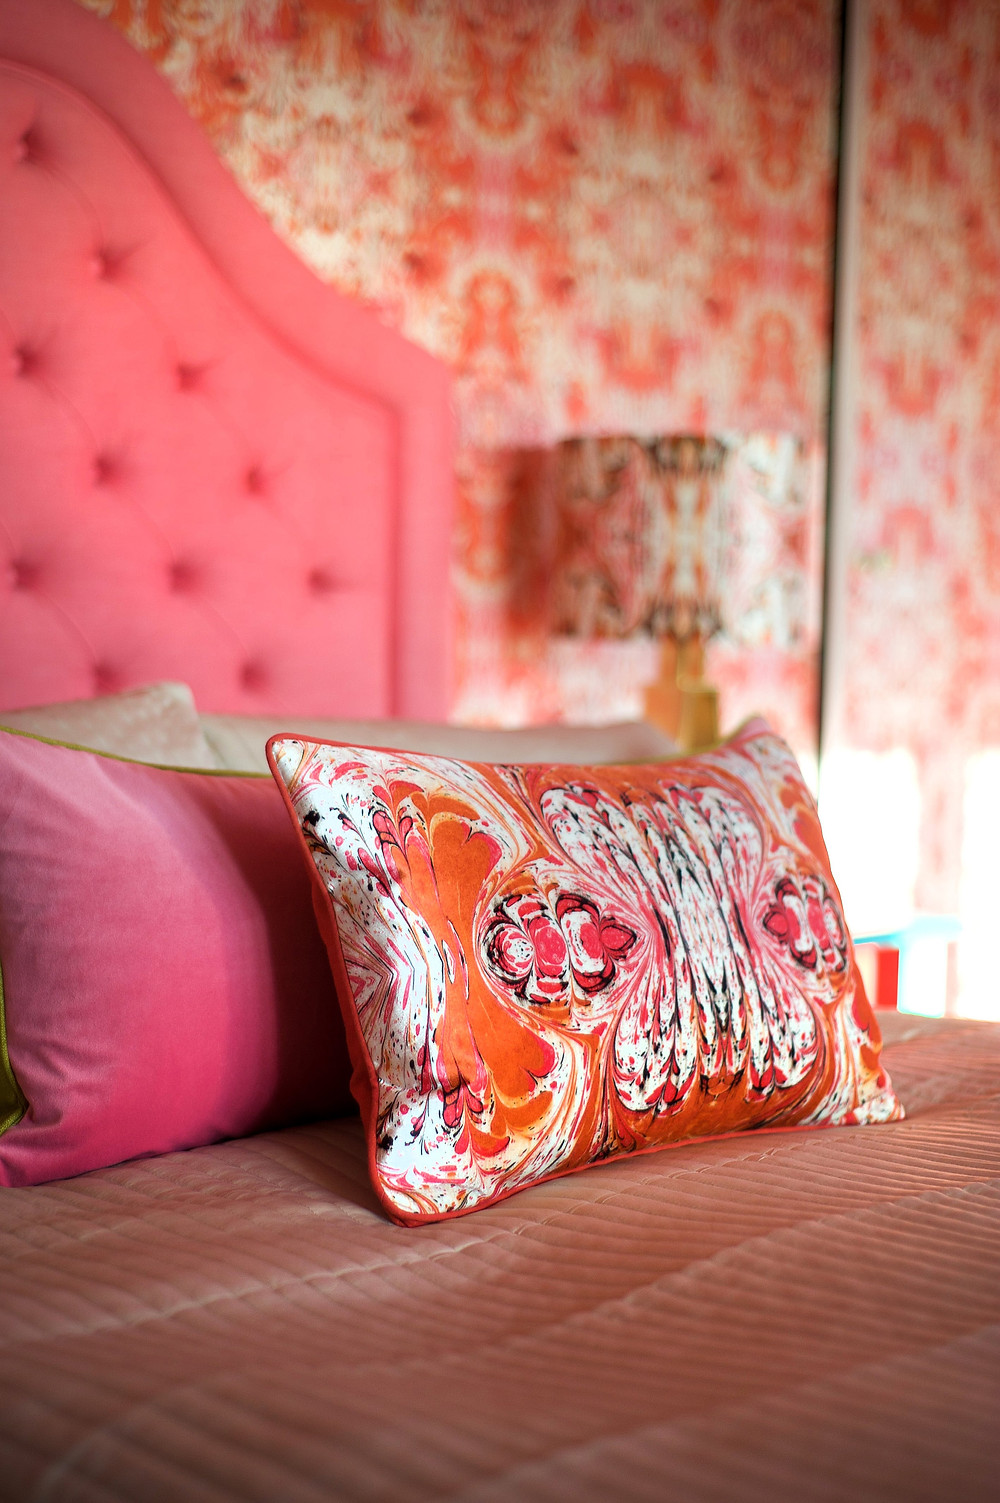 orange feathered wallpaper and cushion in bedroom, Susi Bellamy wallpaper and fabrics